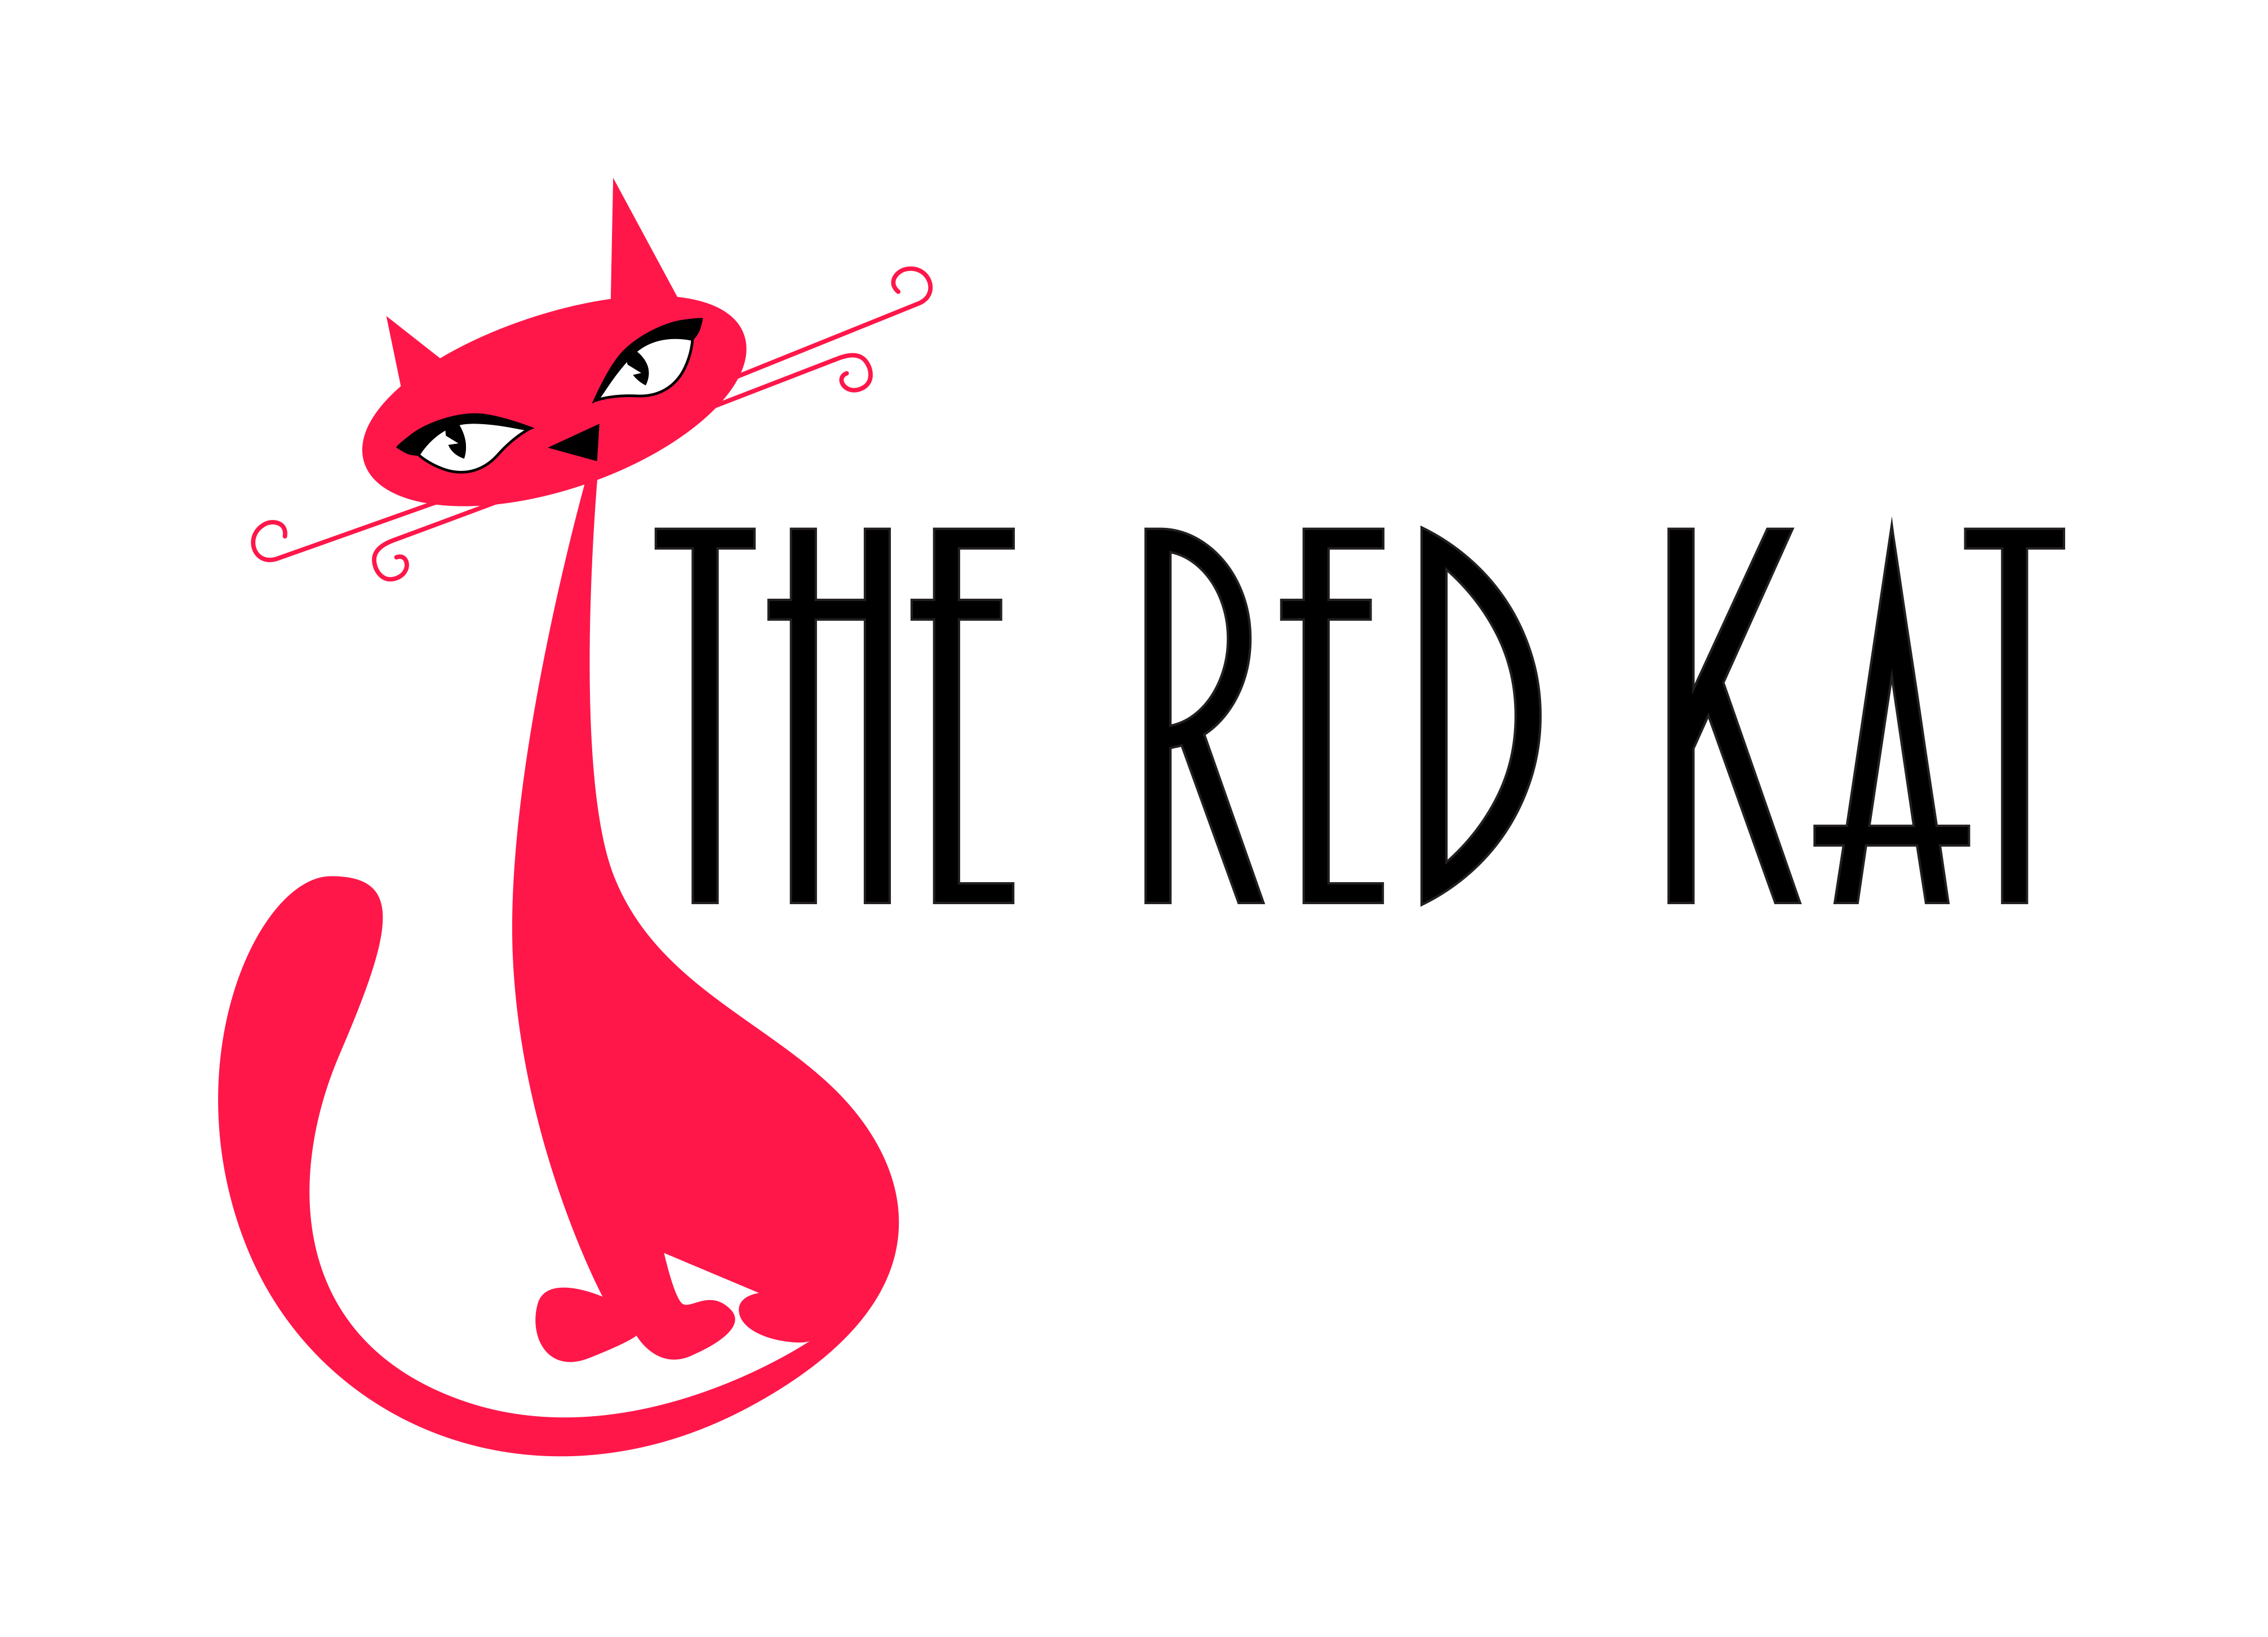 THE RED KAT